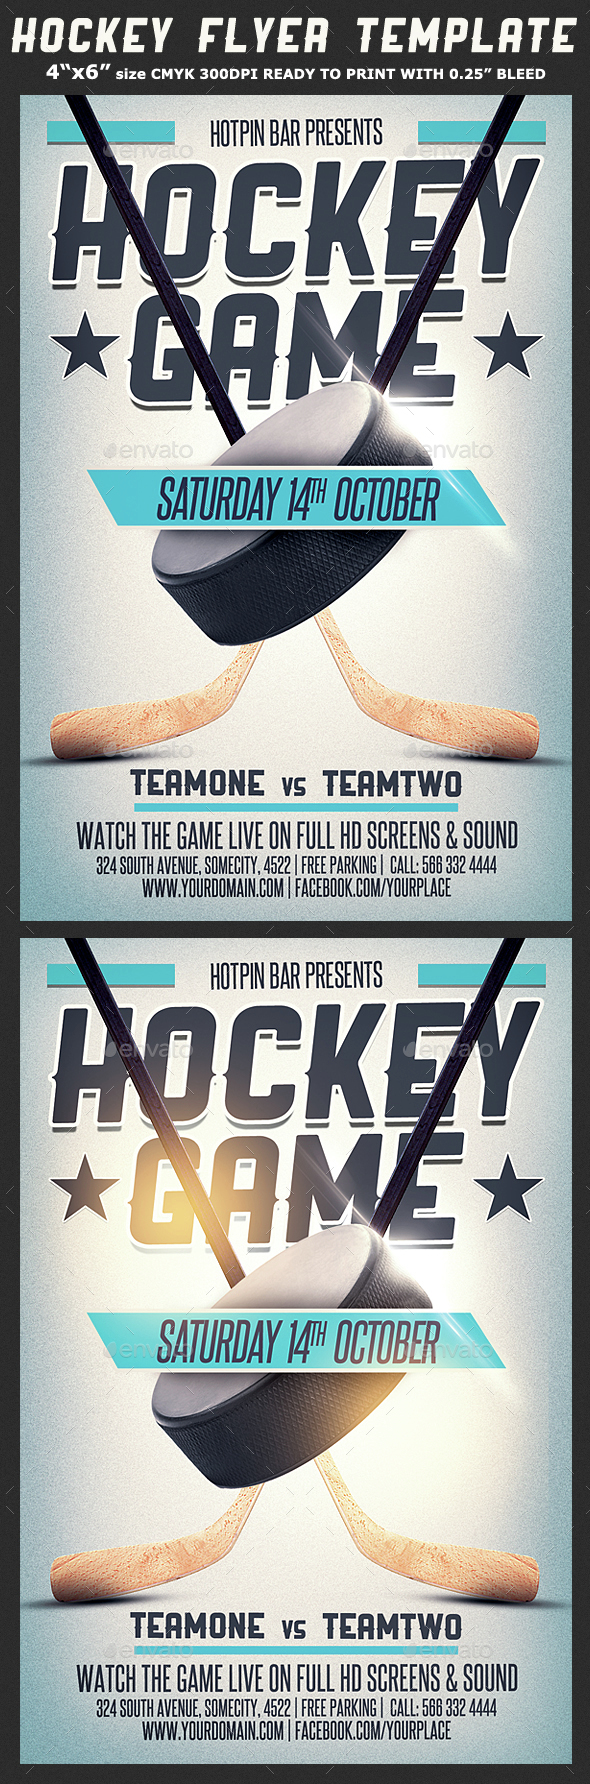 Hockey Game Flyer Template 2 - Sports Events